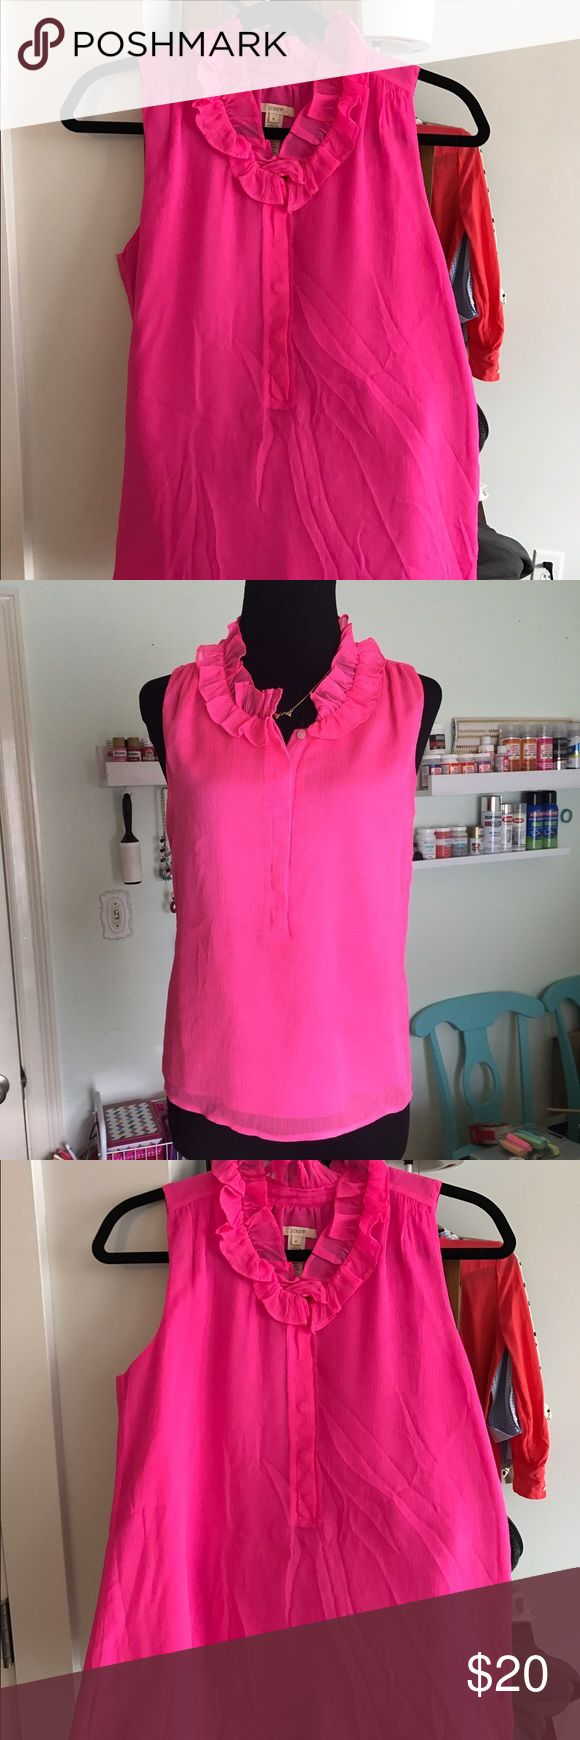 J.Crew Hot Pink Blouse - Size 4 J.Crew Hot Pink Sleeveless Blouse - Size 4. Worn once then dry cleaned. Just a little wrinkly! Please let me know if you have any questions at all! J. Crew Tops Blouses